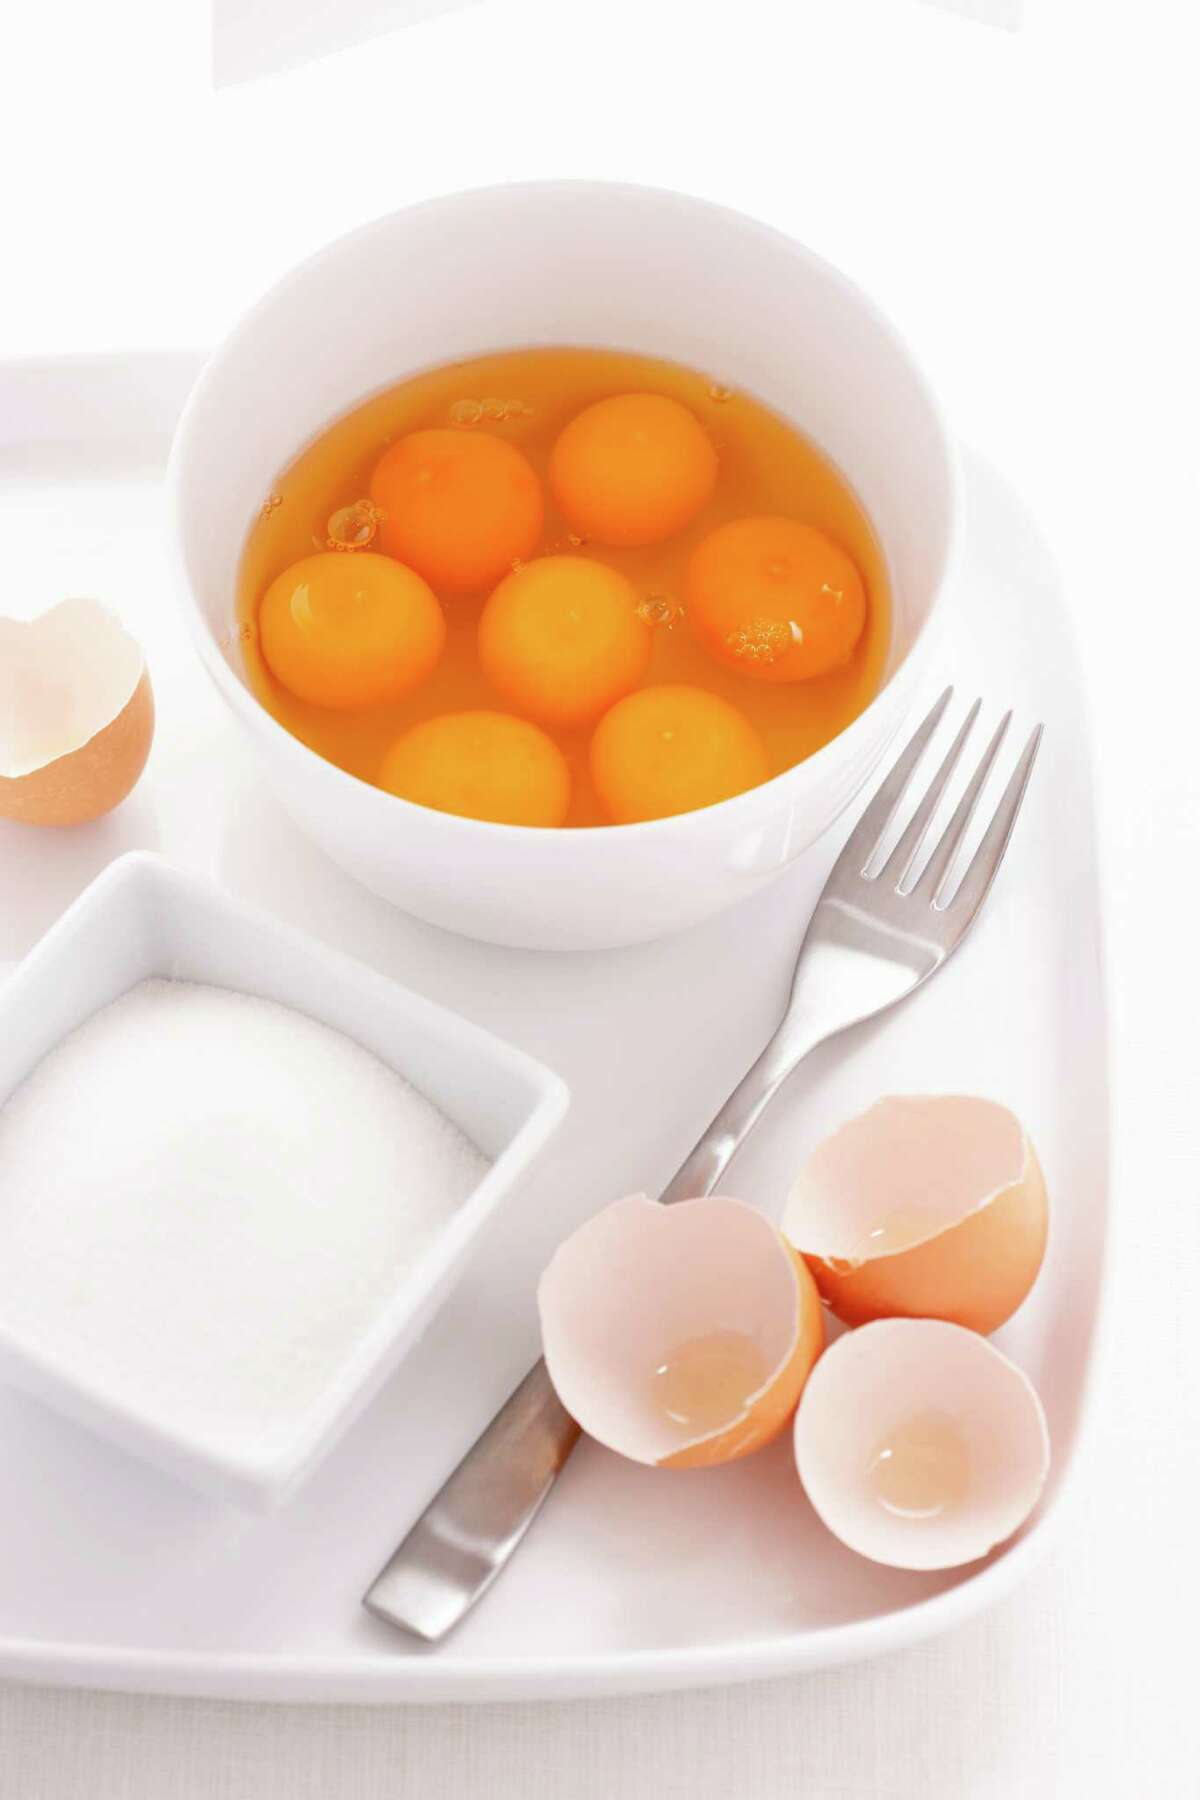 1928 -- albumen - the part of the inside of an egg that is clear before it is cooked and white after it is cooked : the white of an egg